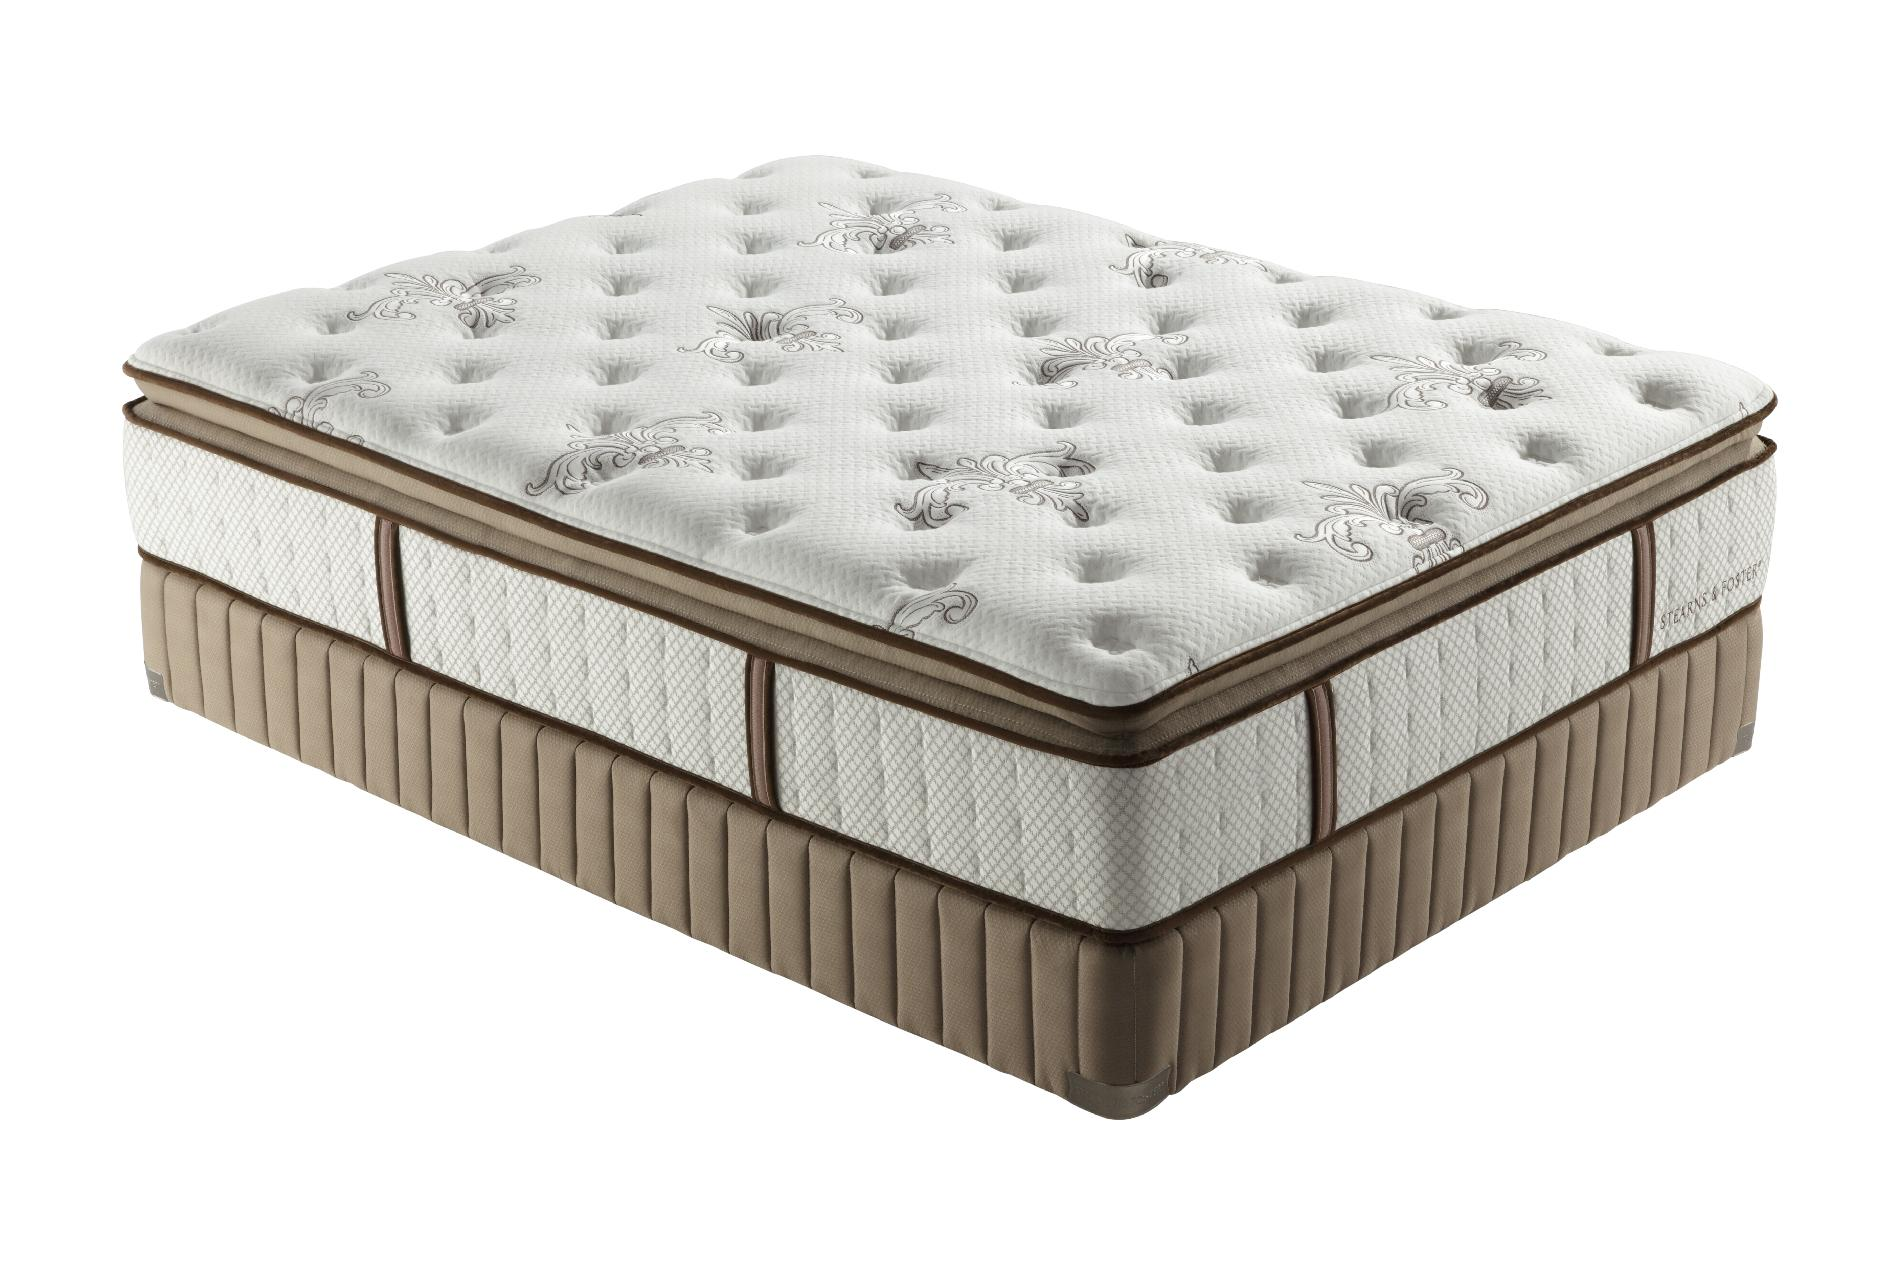 Stearns & Foster Estate Angie II Firm Euro Pillowtop Queen Mattress Only